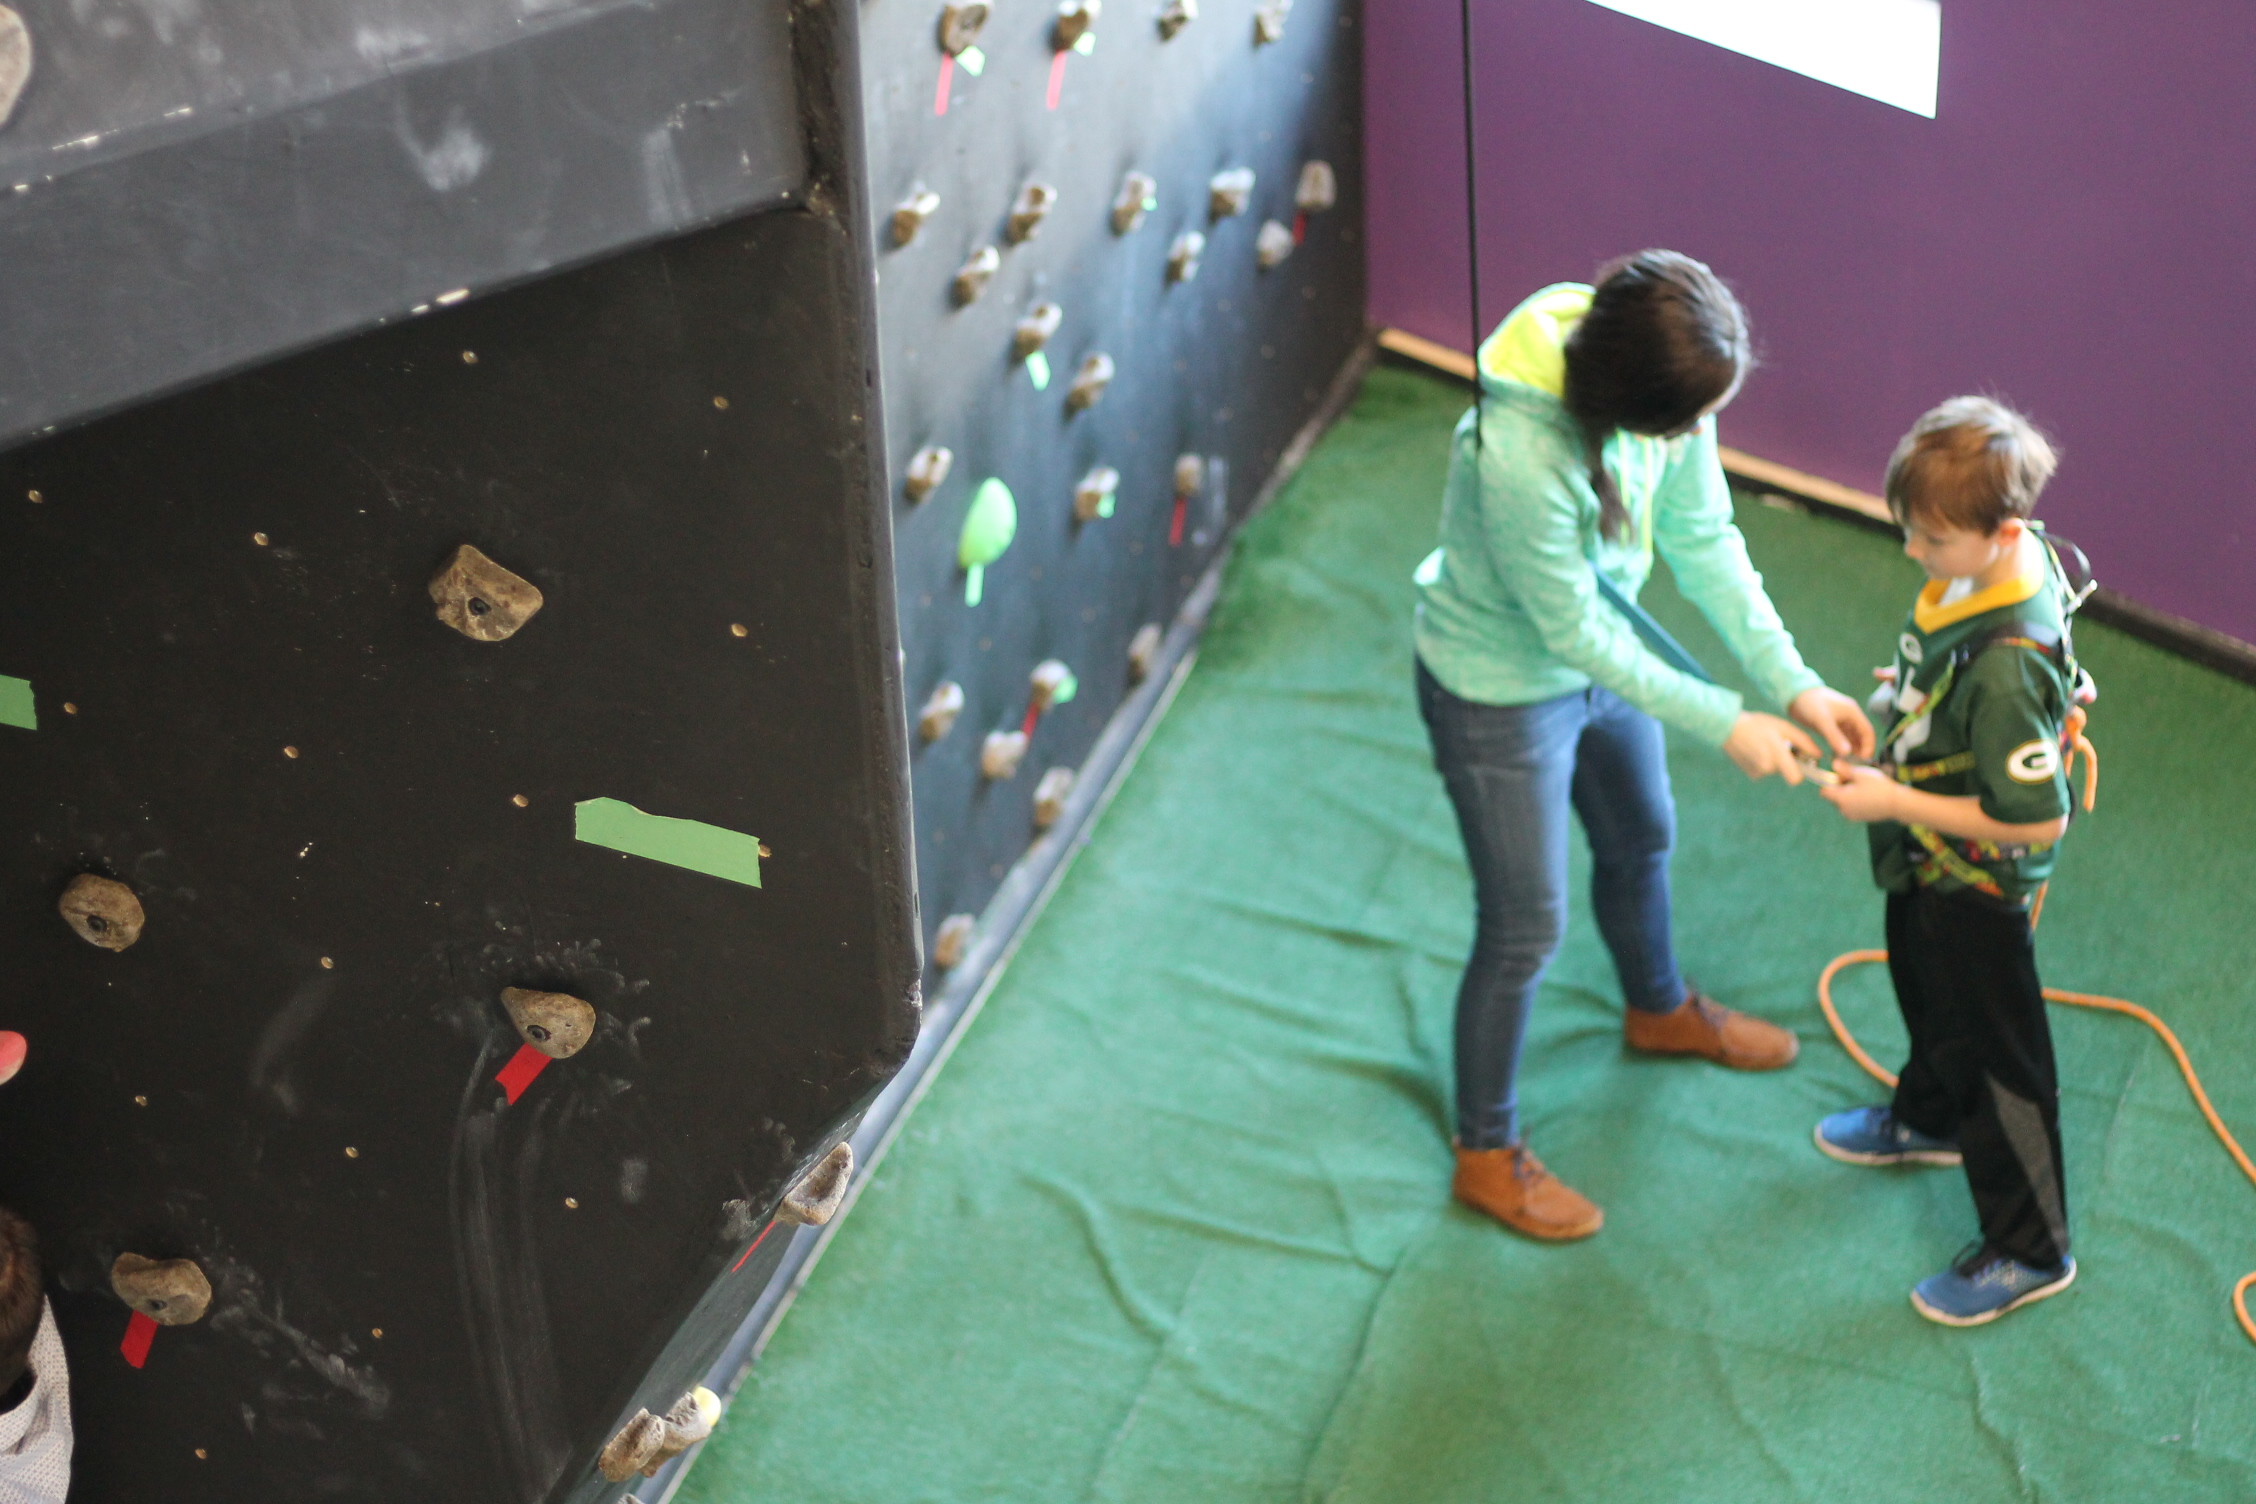 Climbing Lab - Danielle and walker out of focus.JPG